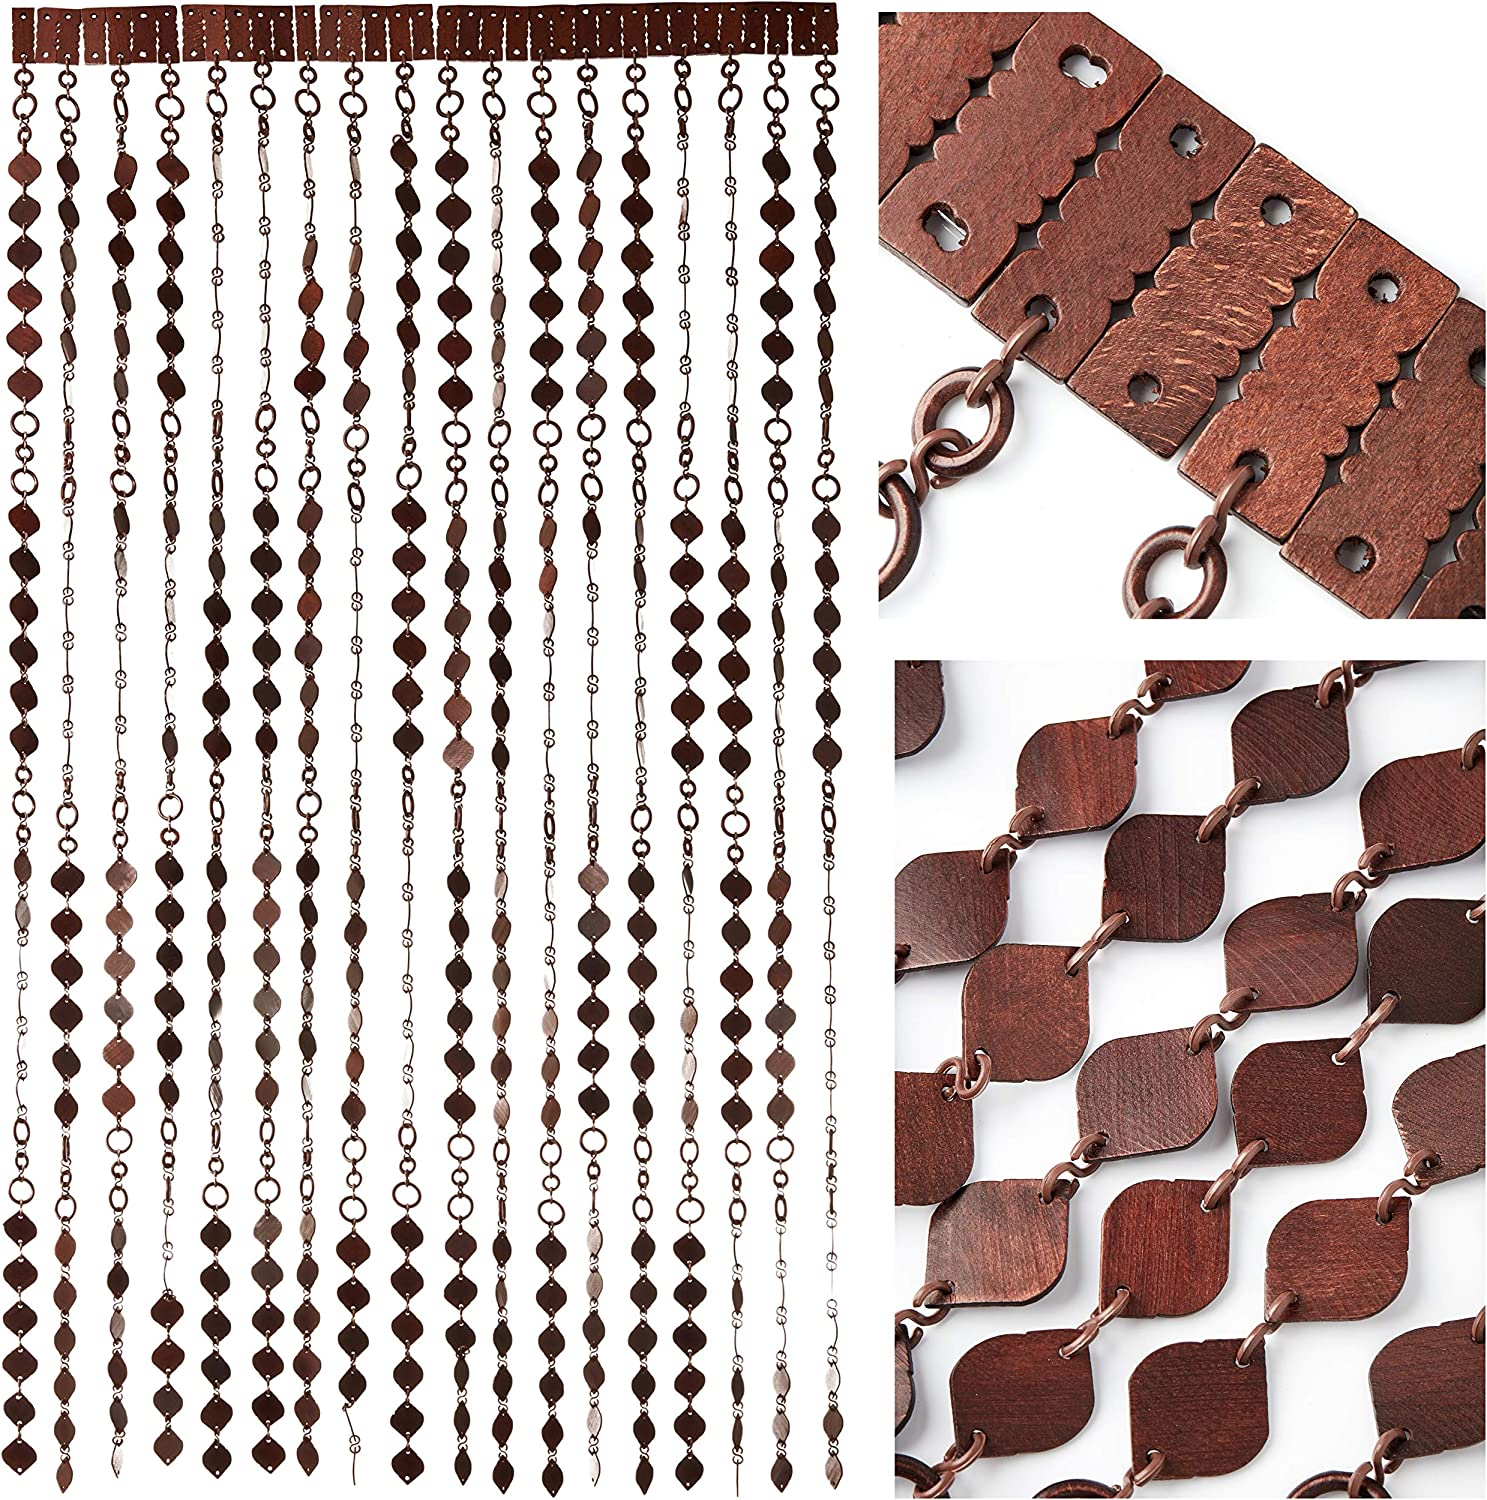 Door Curtain Screen From Wooden Beads Size - 90 x 200 cm - Handmade Hanging Beaded Door Blinds - Easy To Install Style Nr.2